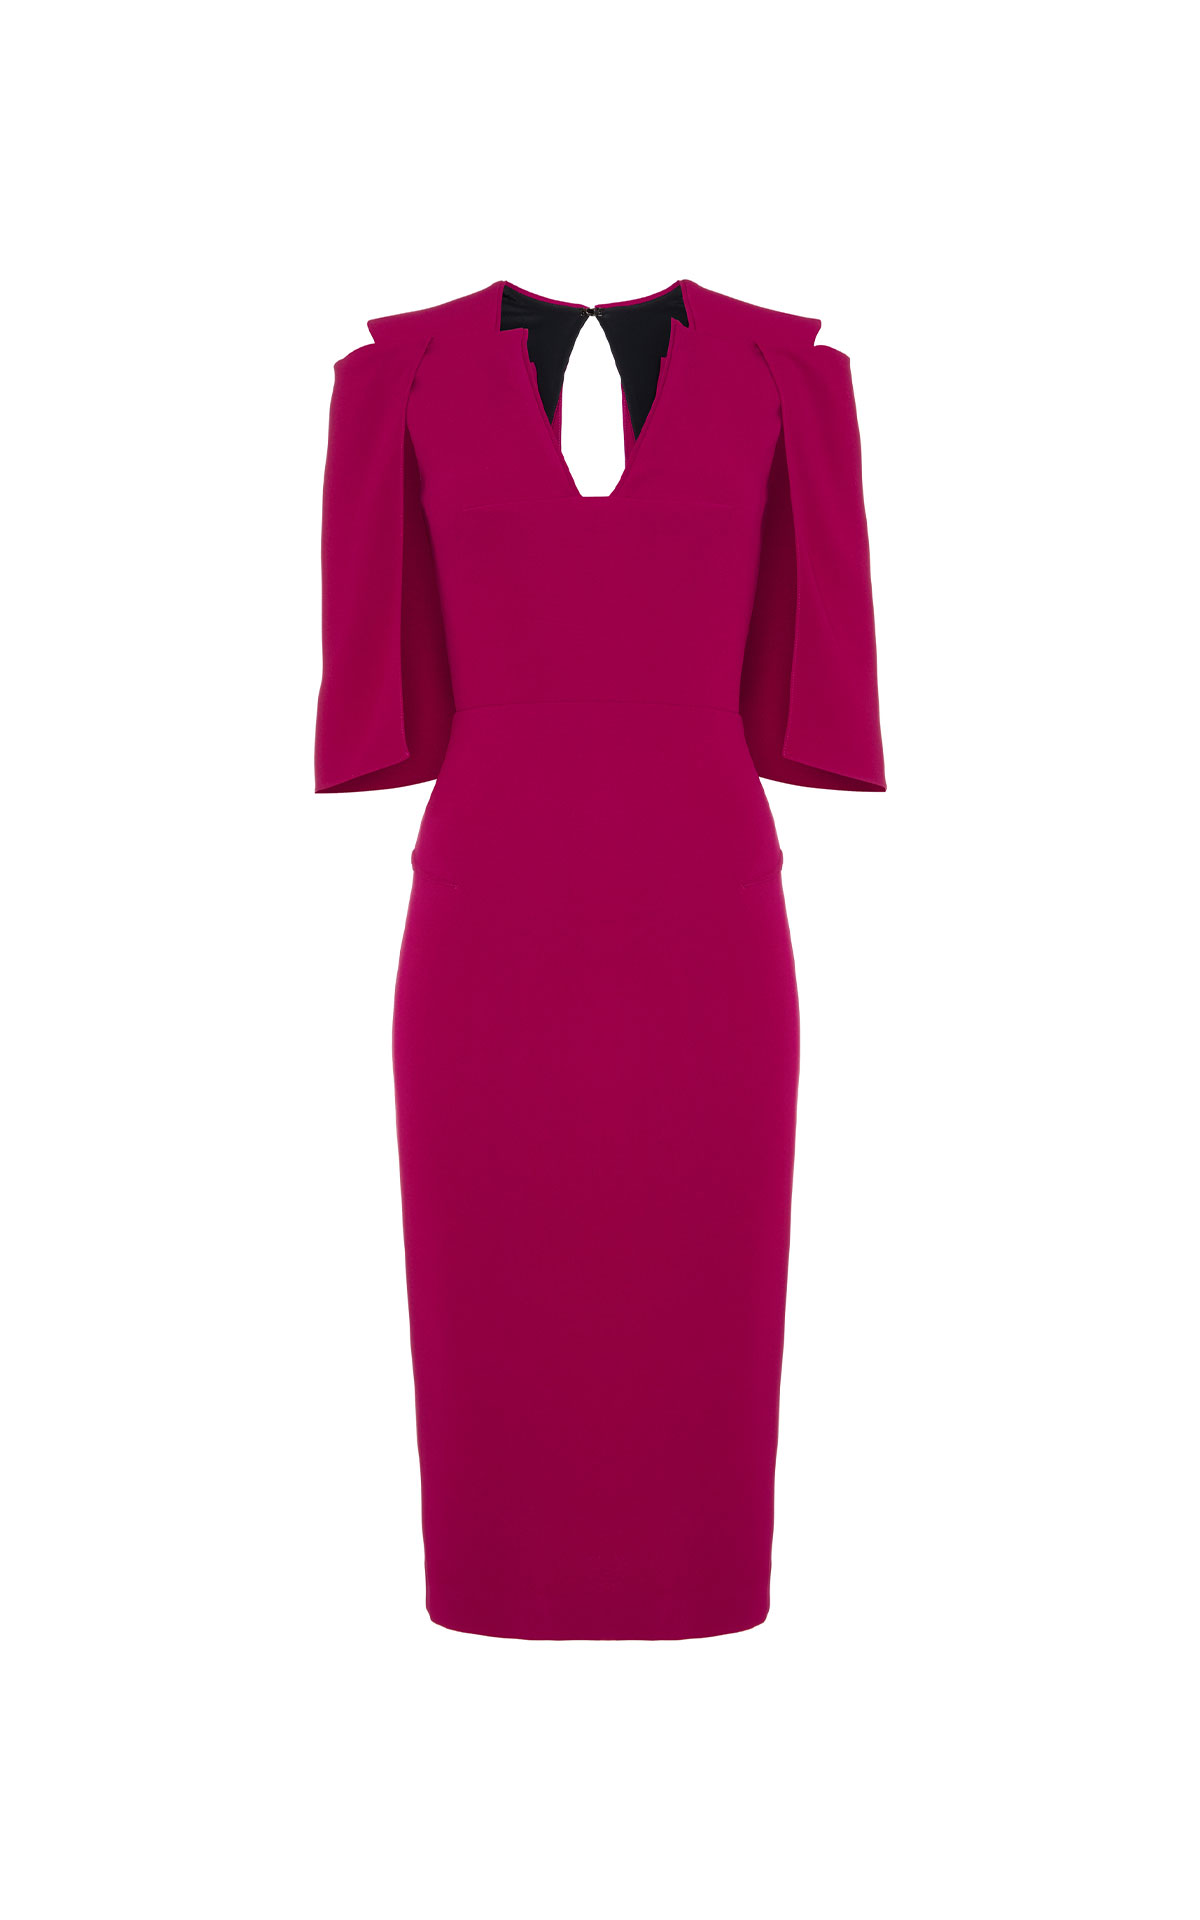 Roland Mouret Queensbury orchid pink dress from Bicester Village